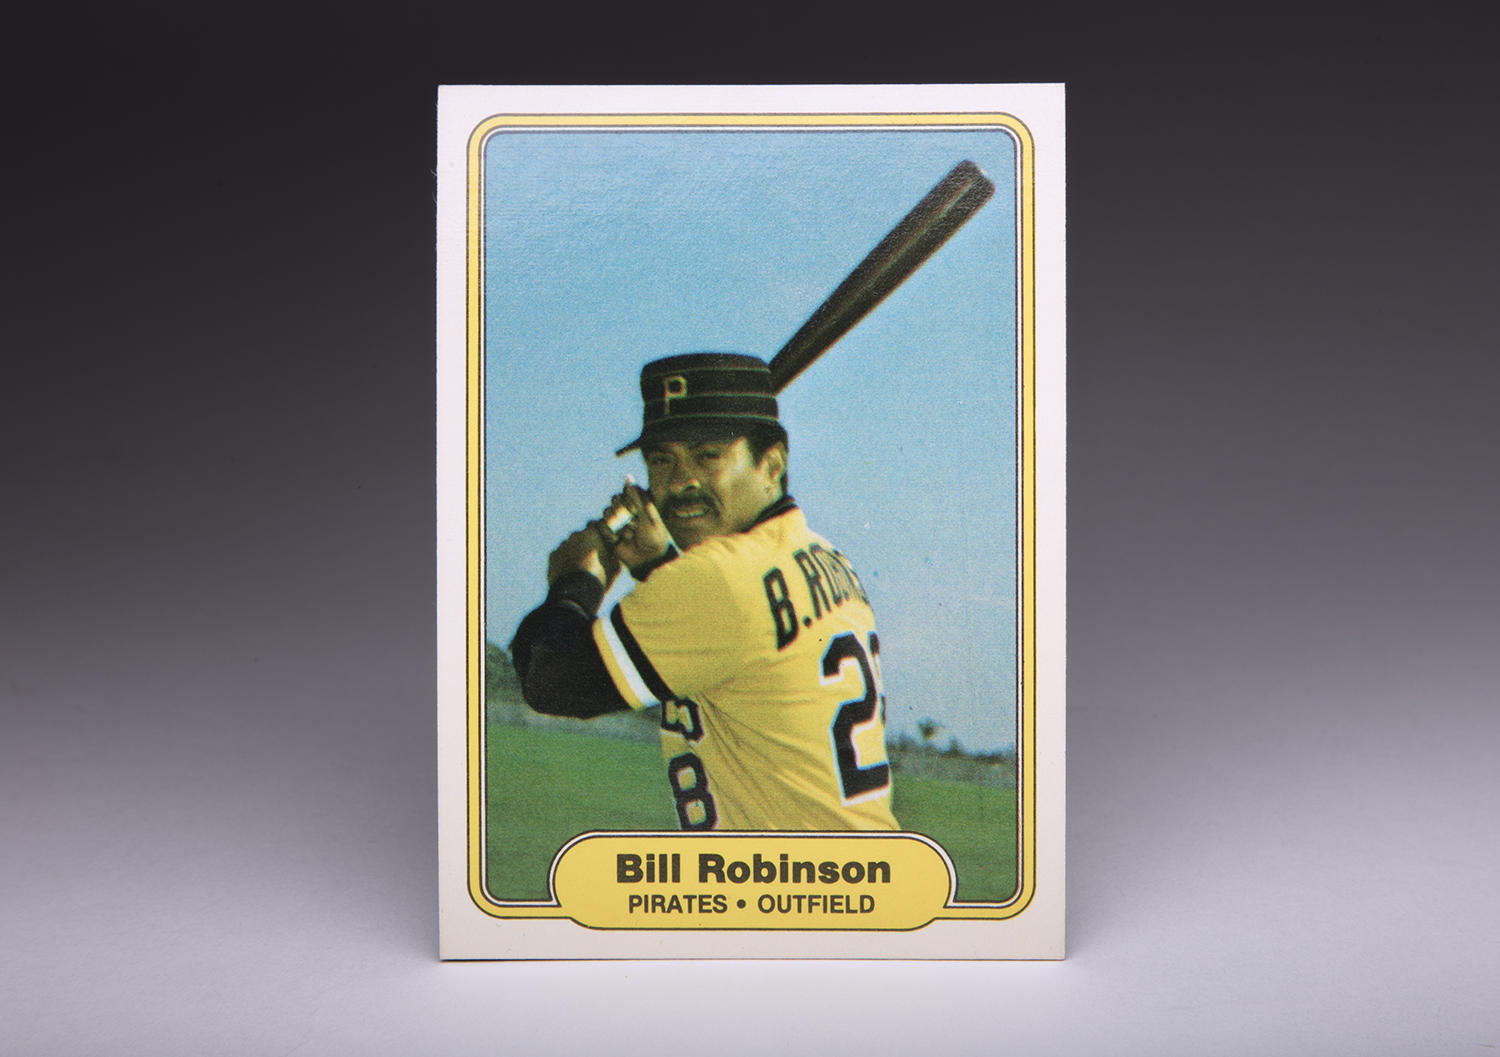 Bill Robinson's expression on his 1982 Fleer card is stern and professional, indicative of a serious ballplayer who meant business whenever he stepped into the batter's box. (Milo Stewart Jr. / National Baseball Hall of Fame and Museum)